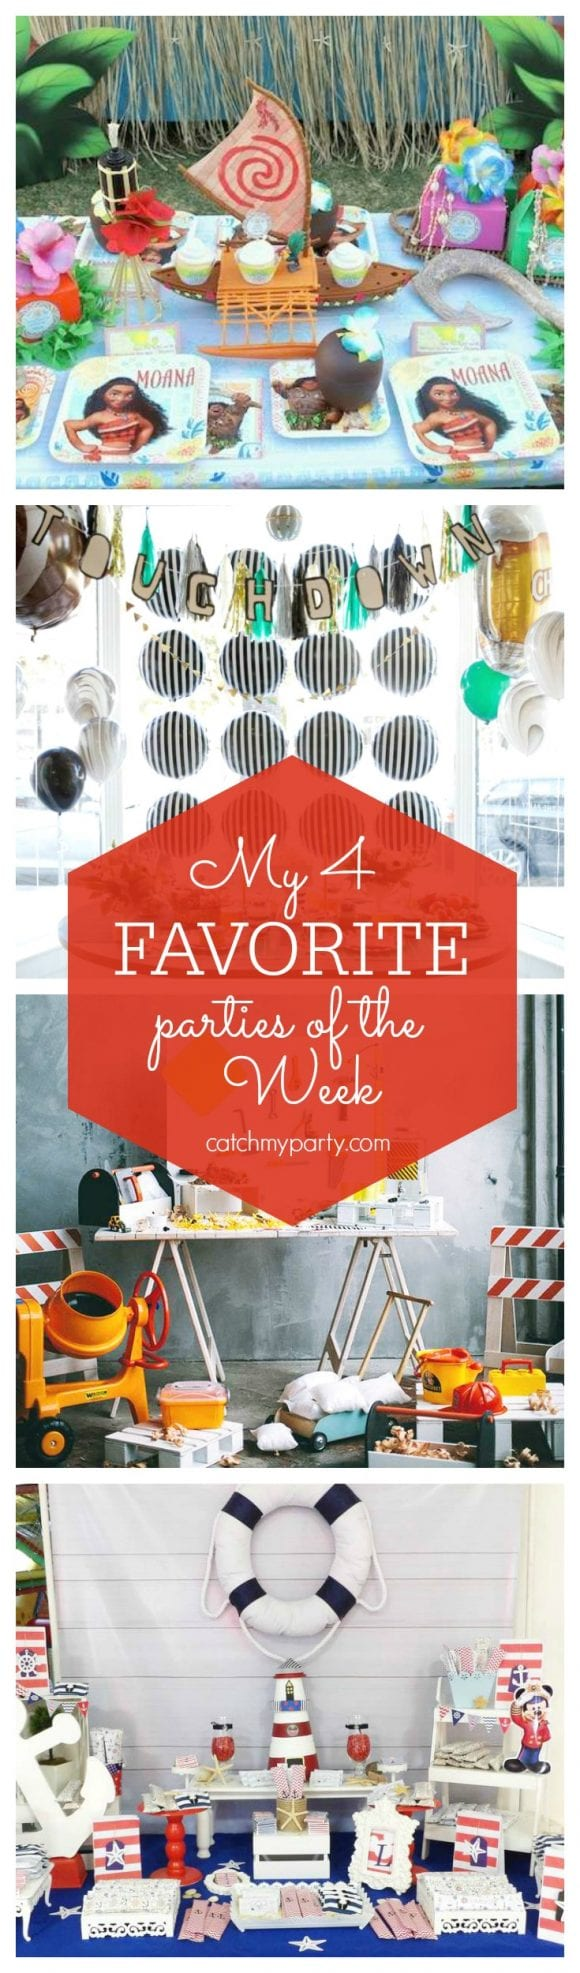 This weeks 4 favorite parties of the week are a tropical Moana birthday party, a Superbowl party, a fun Under Construction party and a Nautical Mickey Birthday Party !